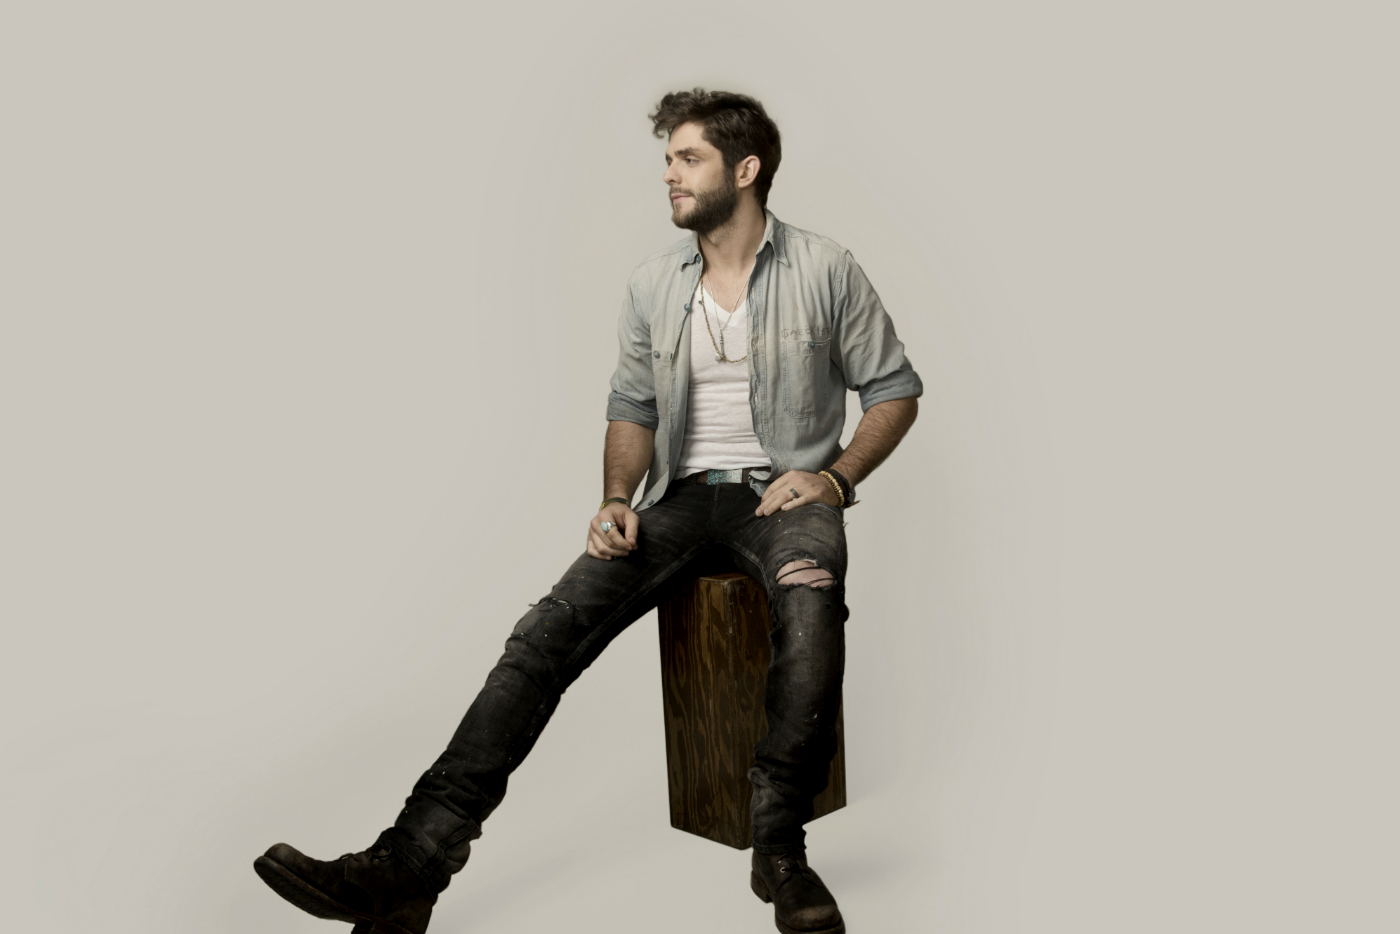 Thomas Rhett image courtesy Joseph Llanes and chuffmedia.com